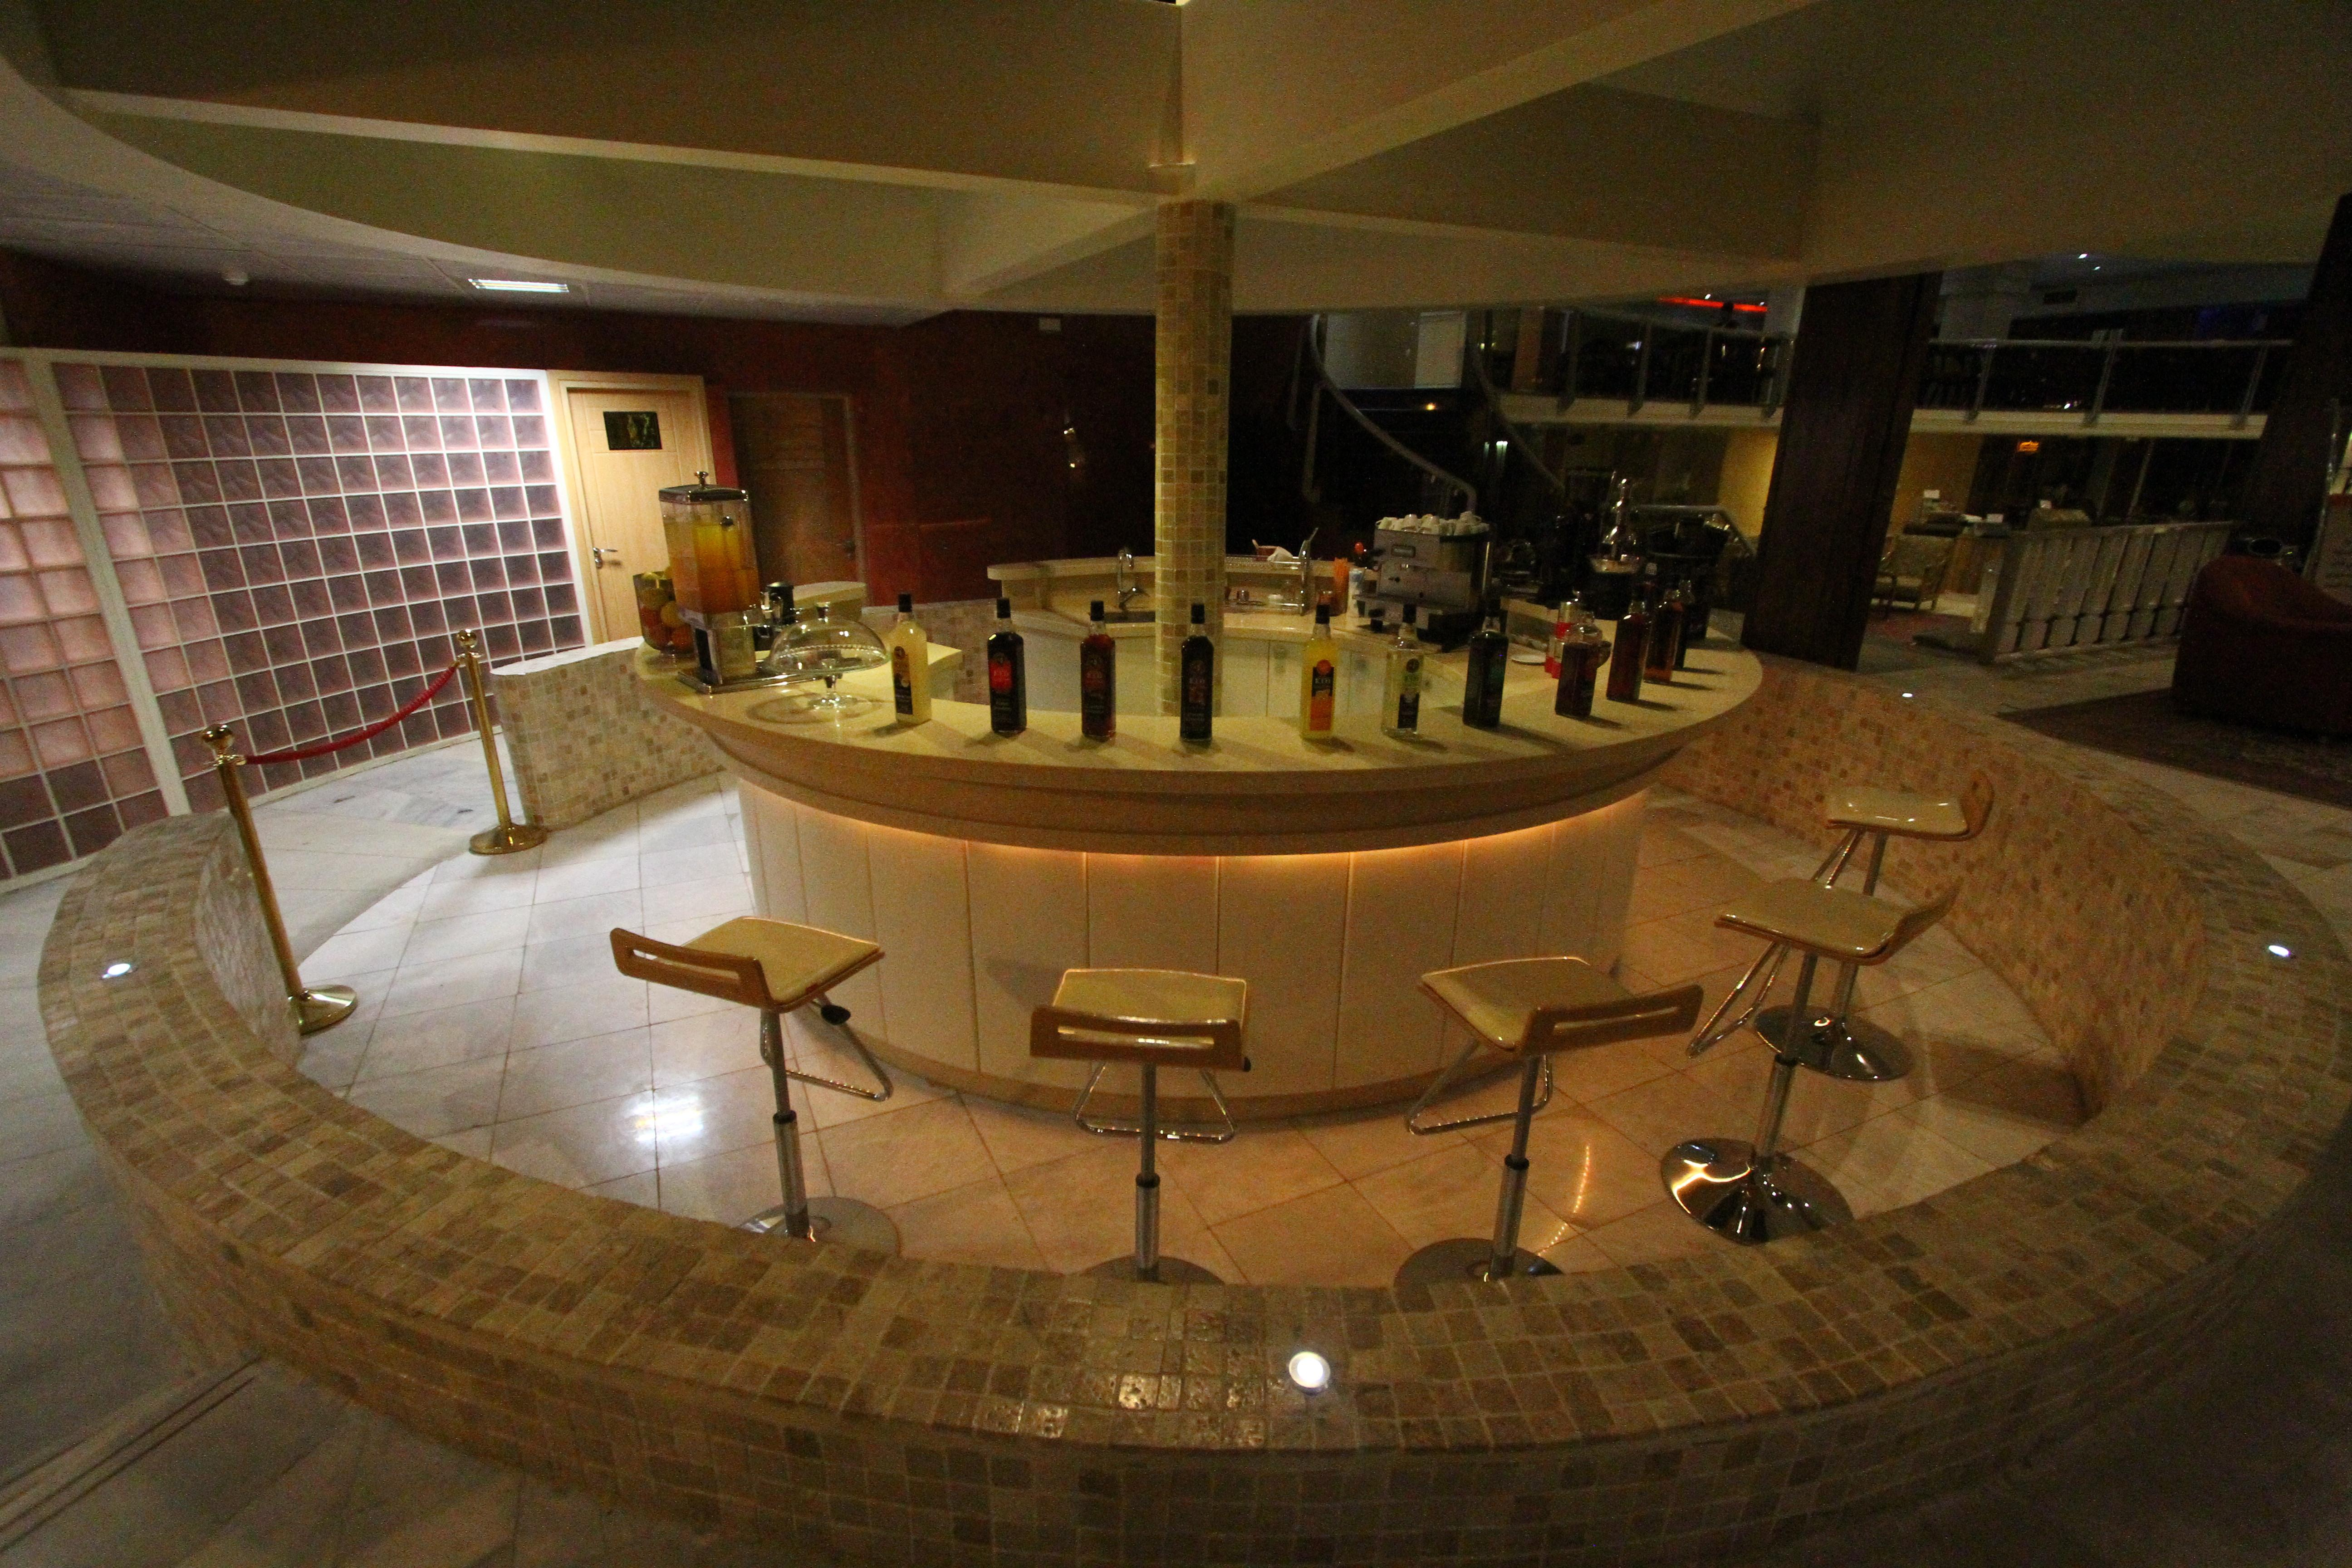 Verriere Cuisine Avec Ouvrant ~ Piroozi Hotel Isfahan Let S Go Iran